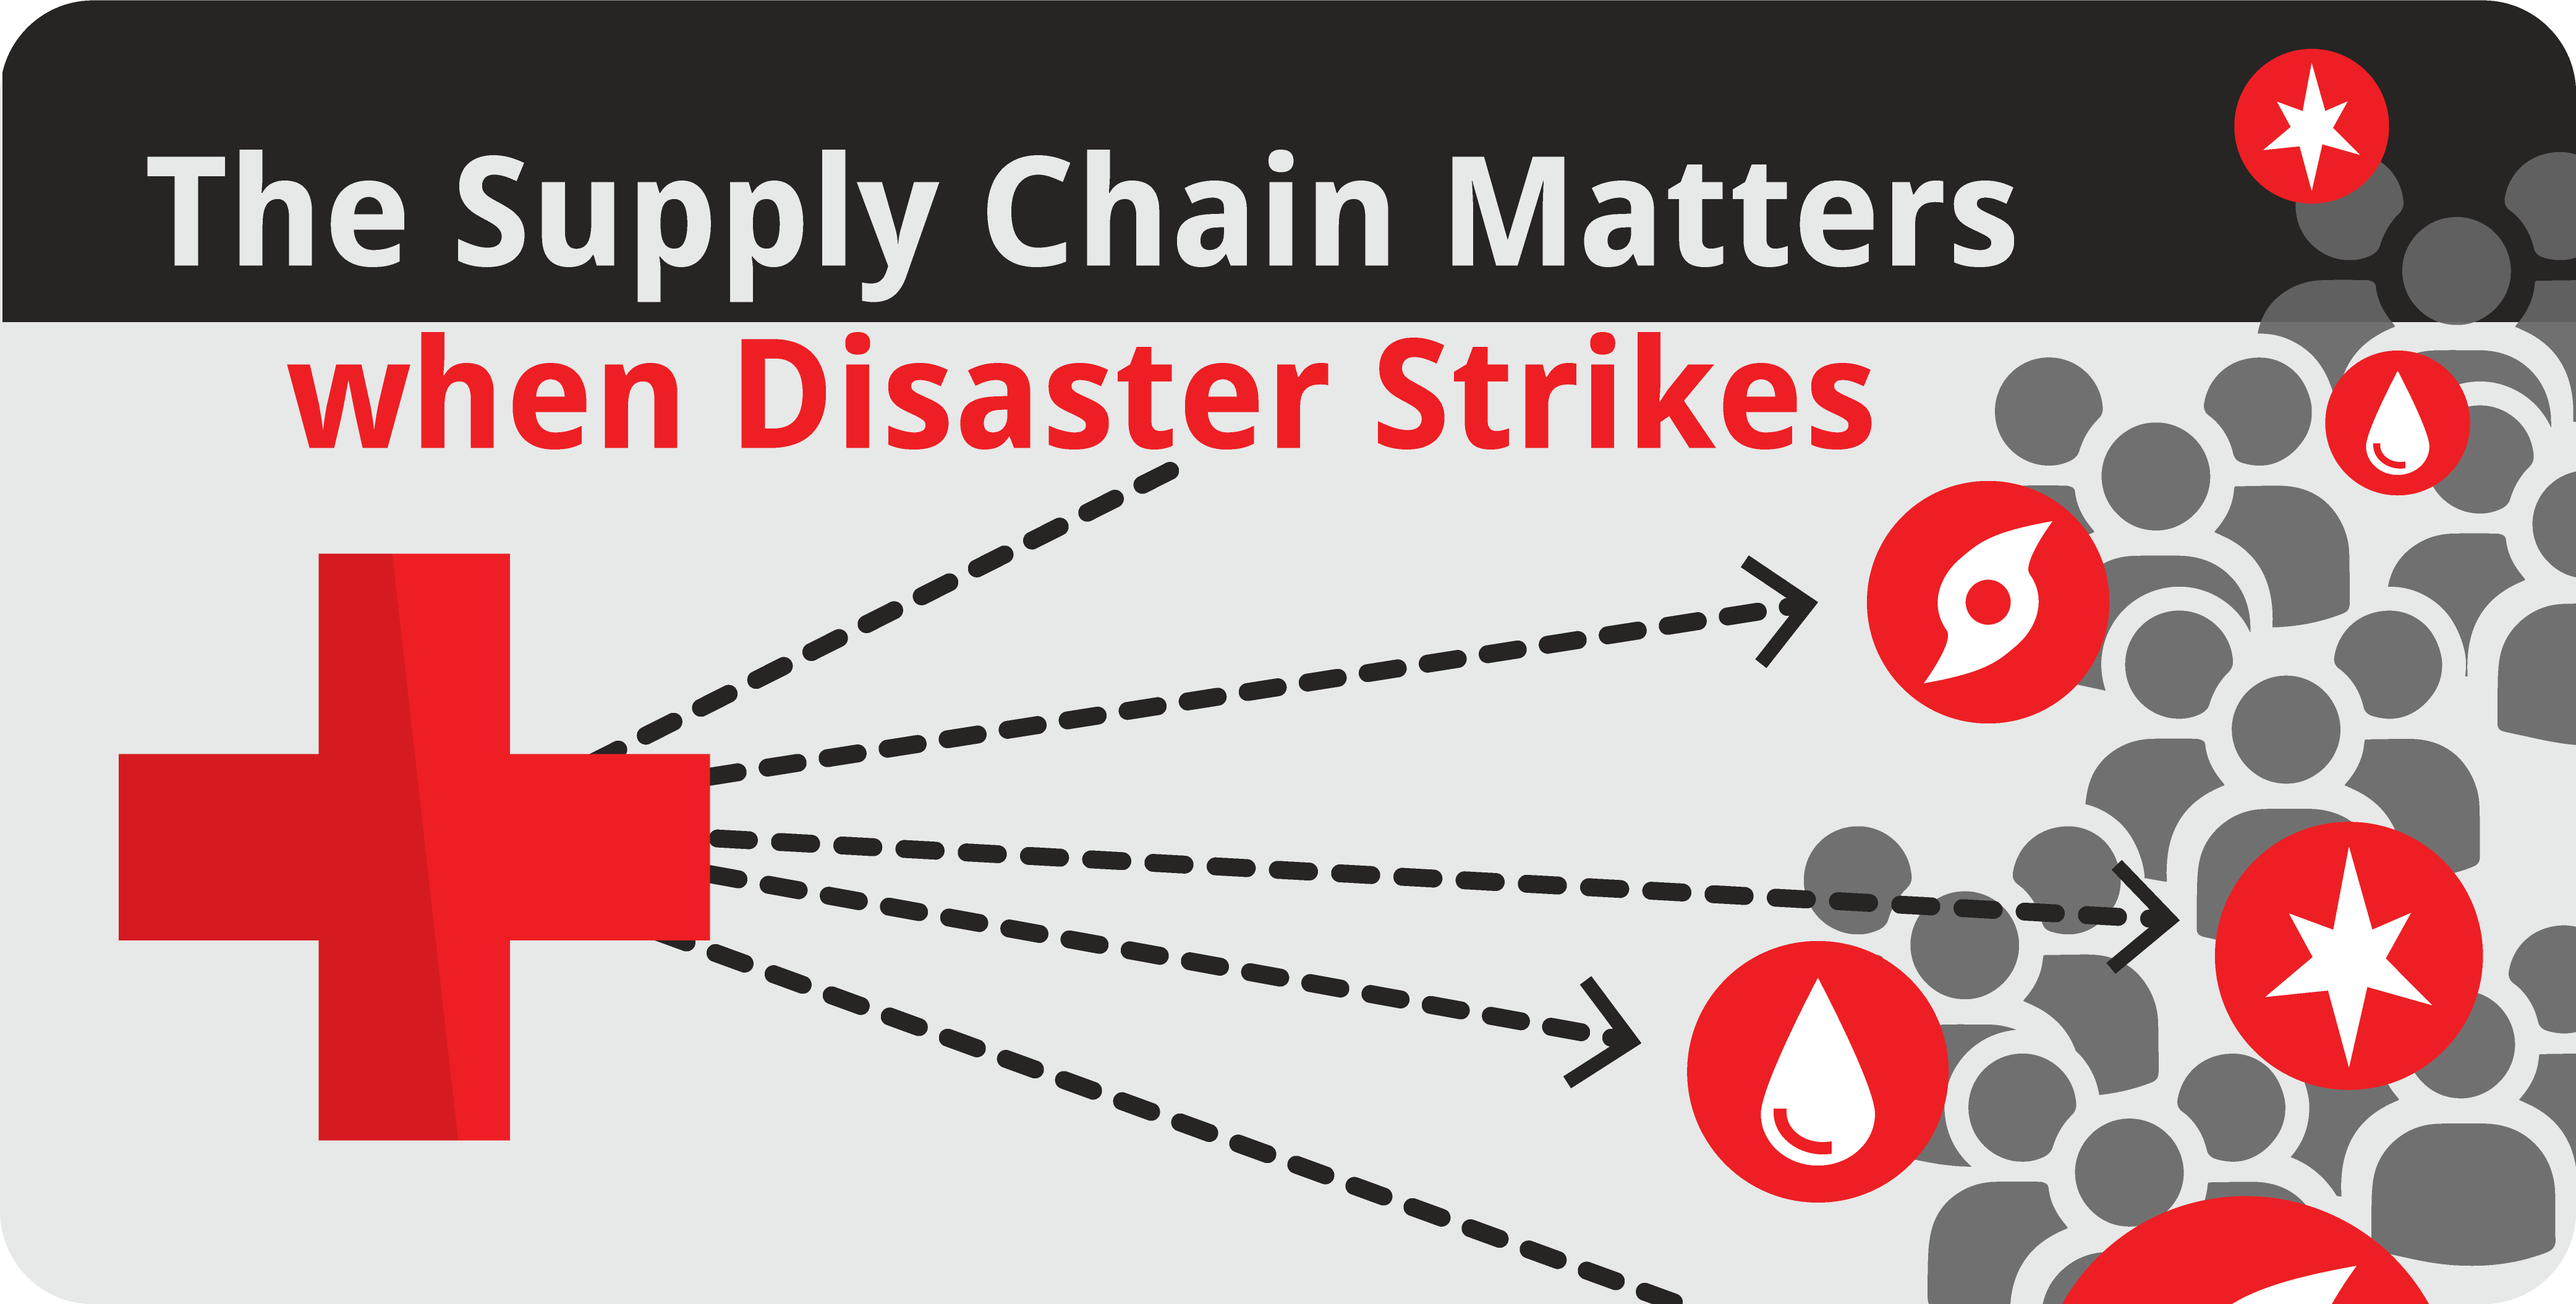 The Supply Chain Matters When Disaster Strikes